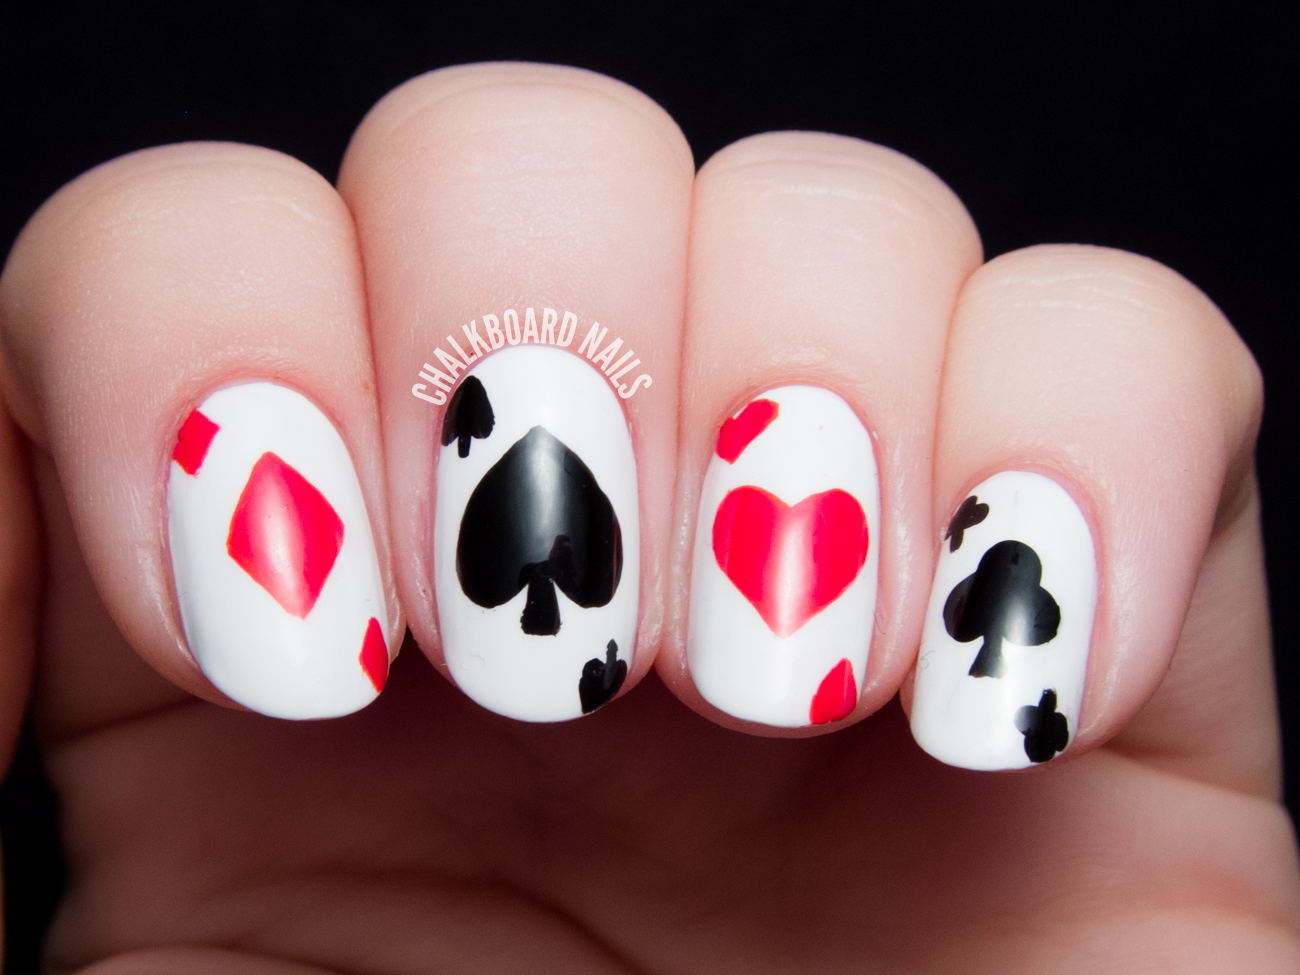 If You Remove The Thumb From This Equation Have A Sweet Las Vegas Playing Card Manicure